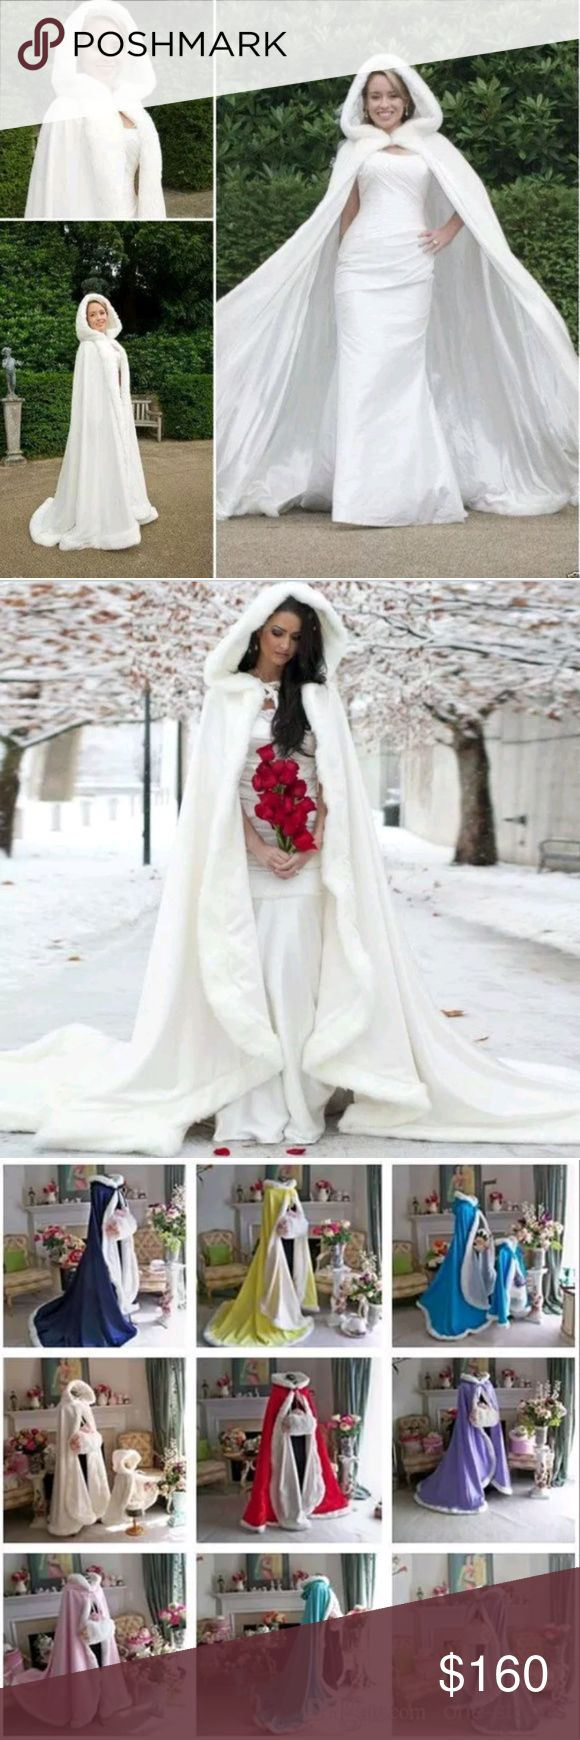 10 color winter wedding dress hooded cloak Cape faux fur Bridals mantle wraps. Great for a winter wedding. Since this is custom made height measurements are required Jackets & Coats Capes